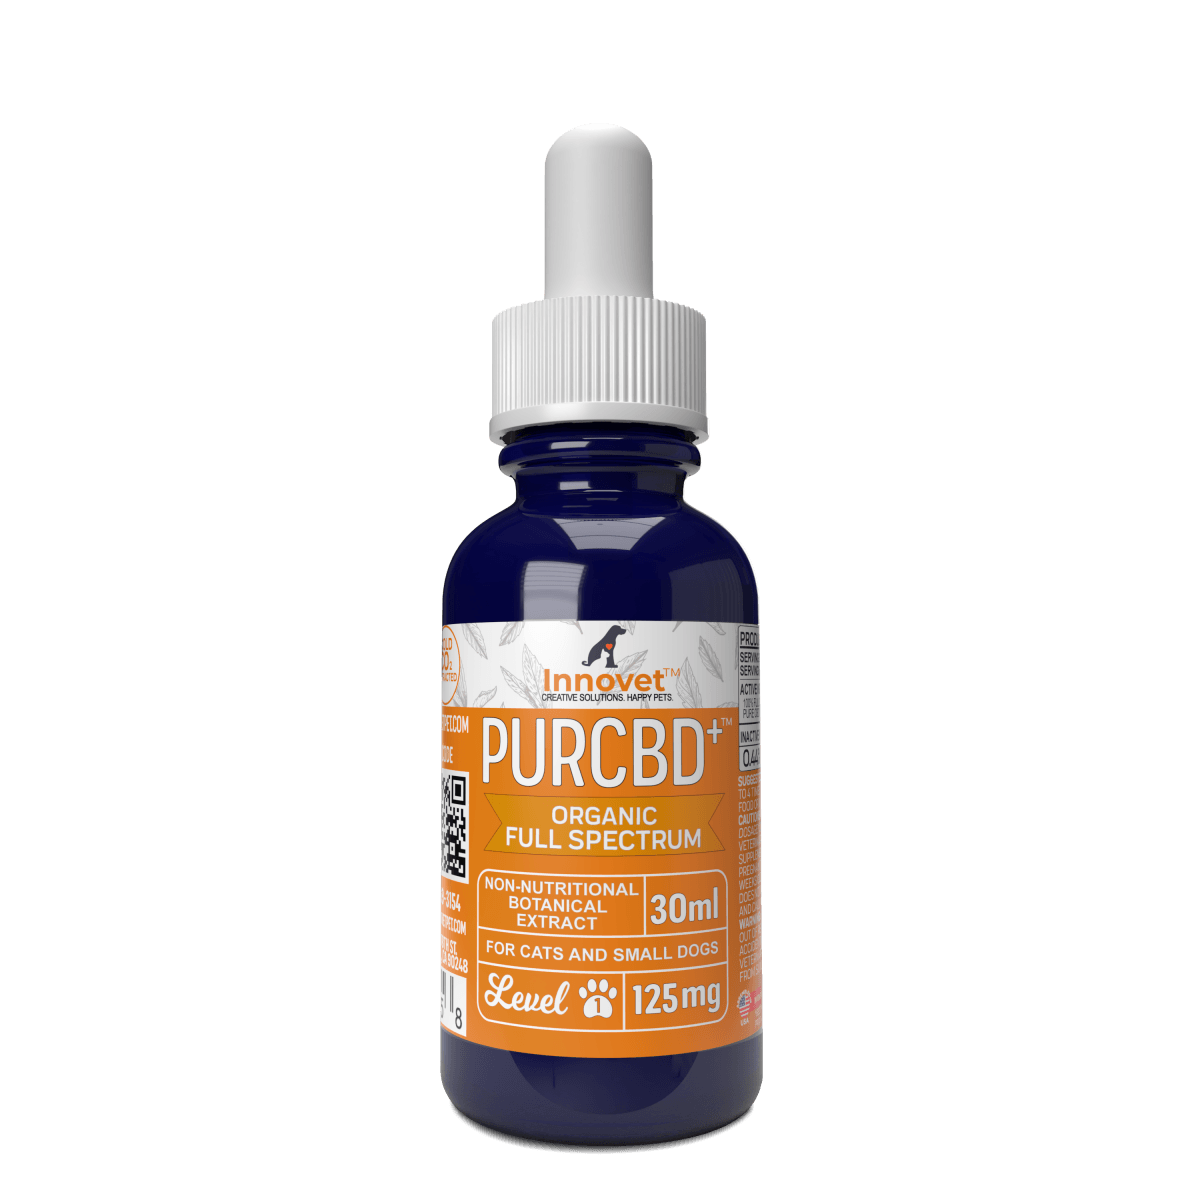 Innovet CBD Oil for Dogs